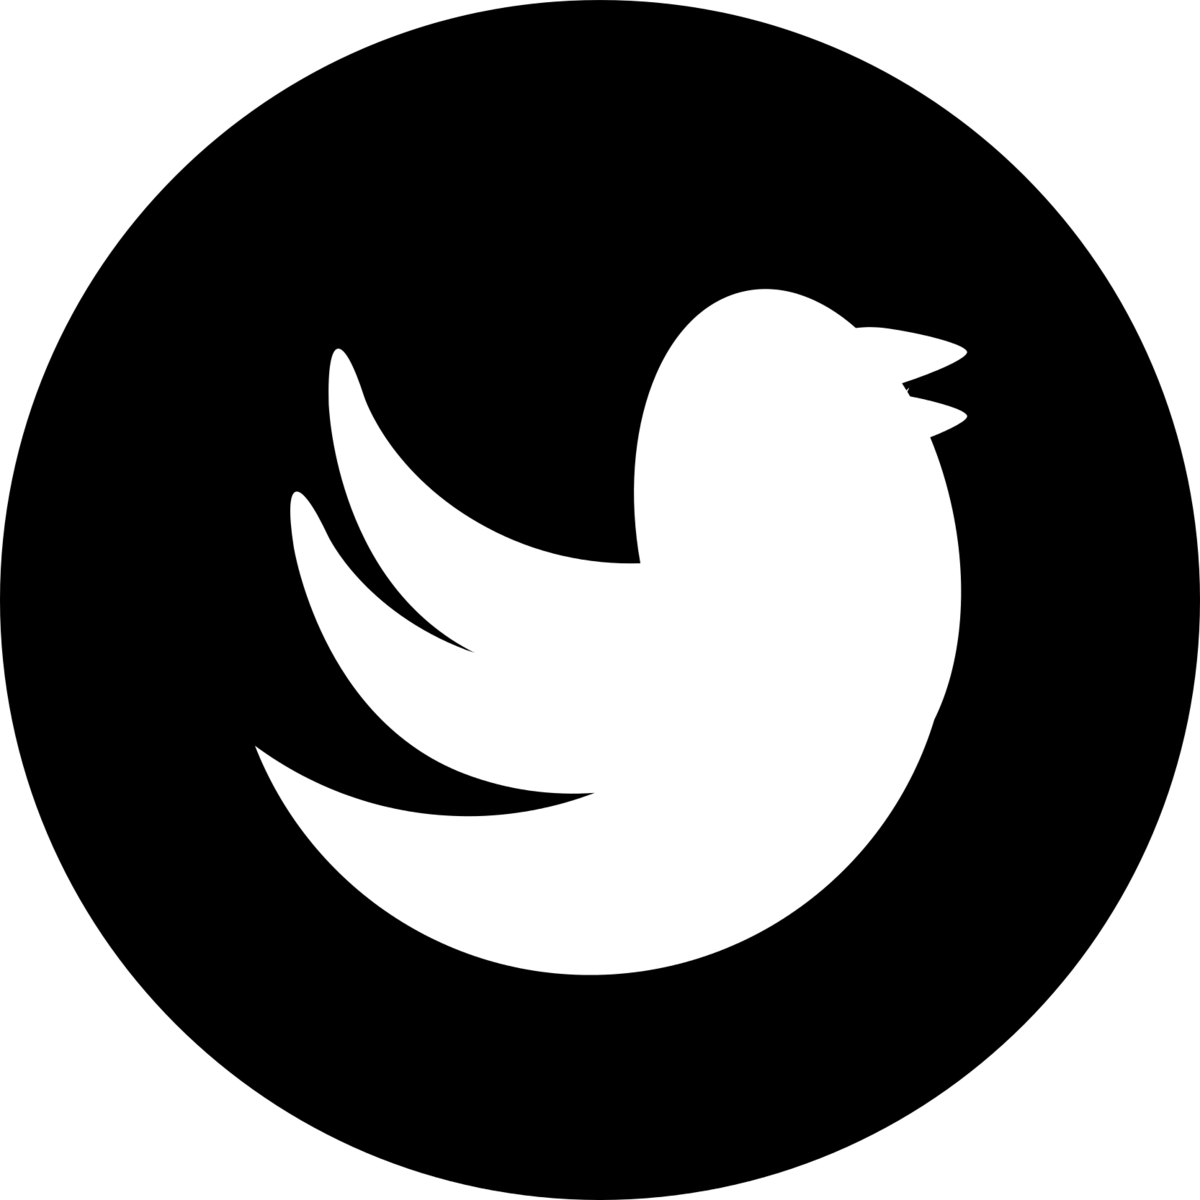 10 circle twitter icon images twitter circle icon